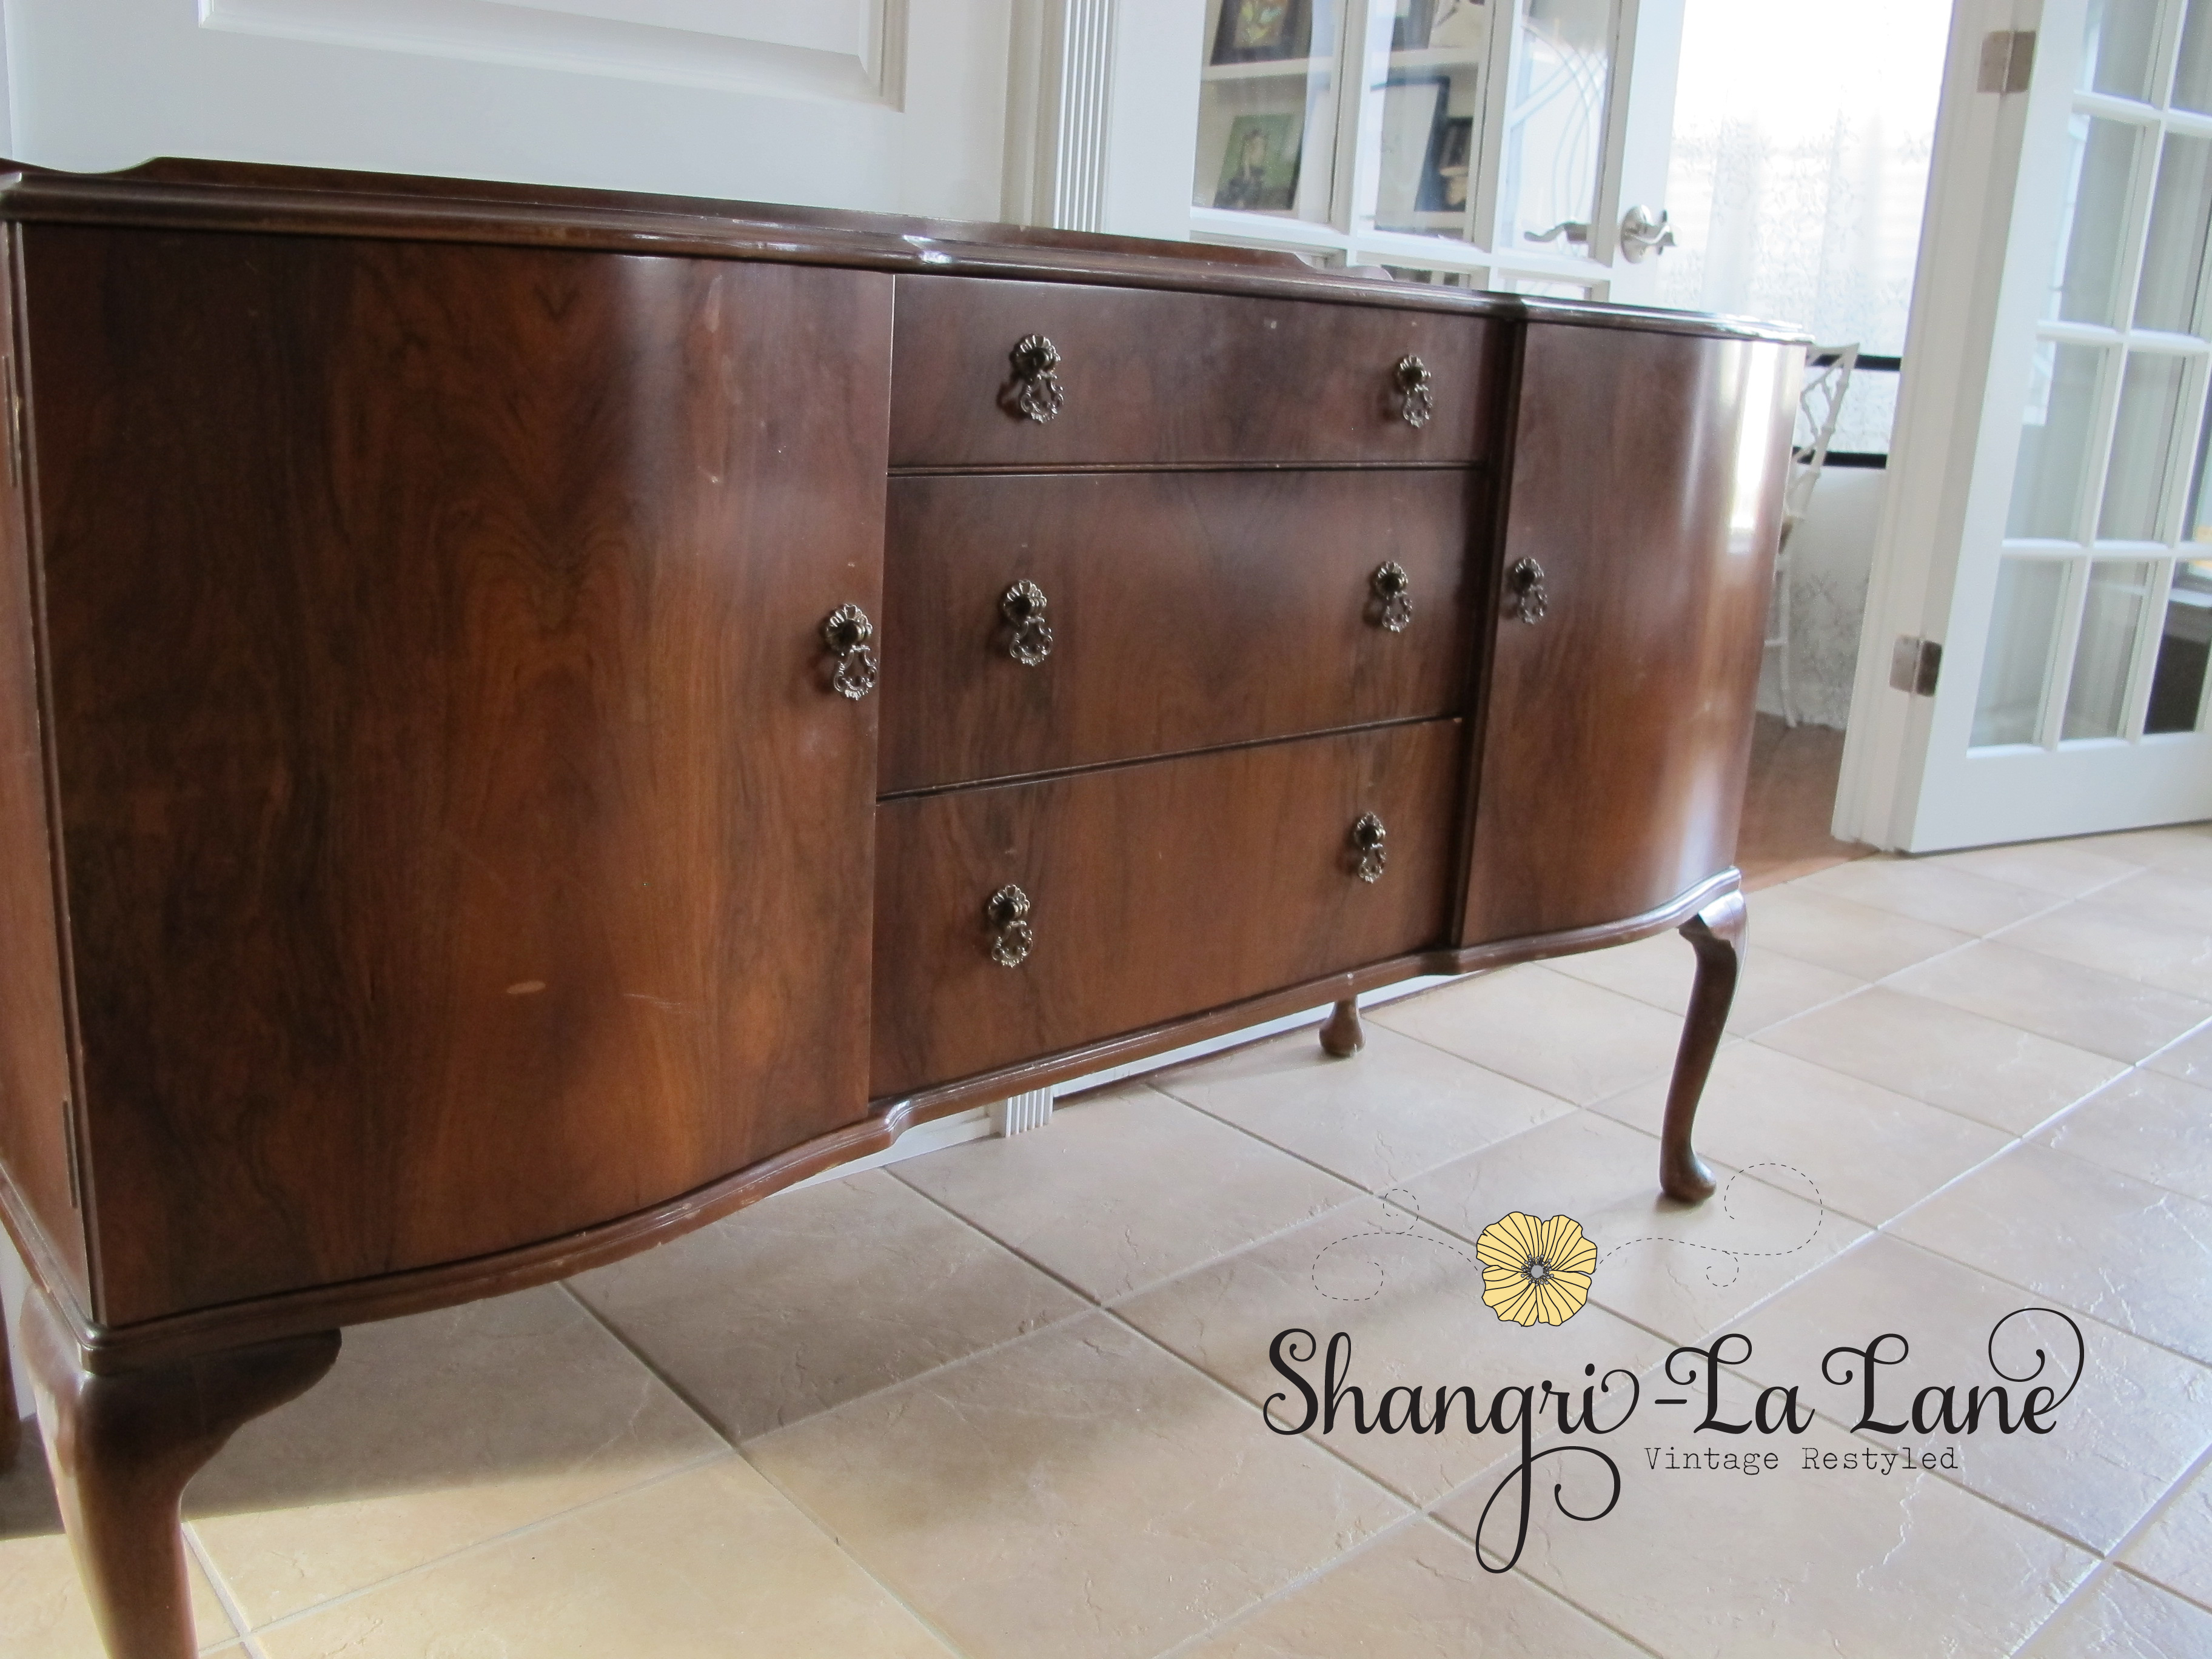 antique sideboard shangri la lane. Black Bedroom Furniture Sets. Home Design Ideas